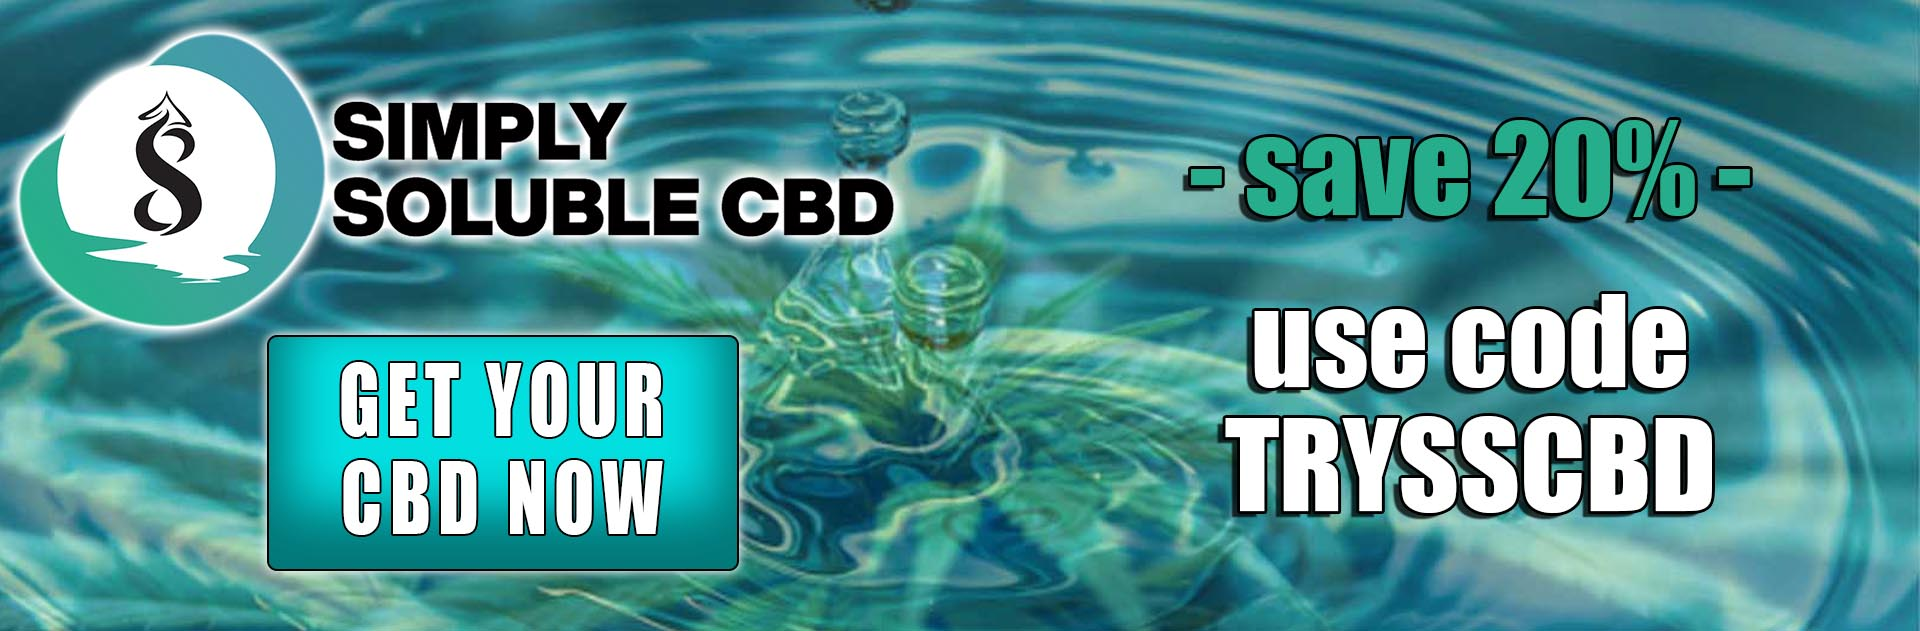 try-simply-soluble-cbd.jpg